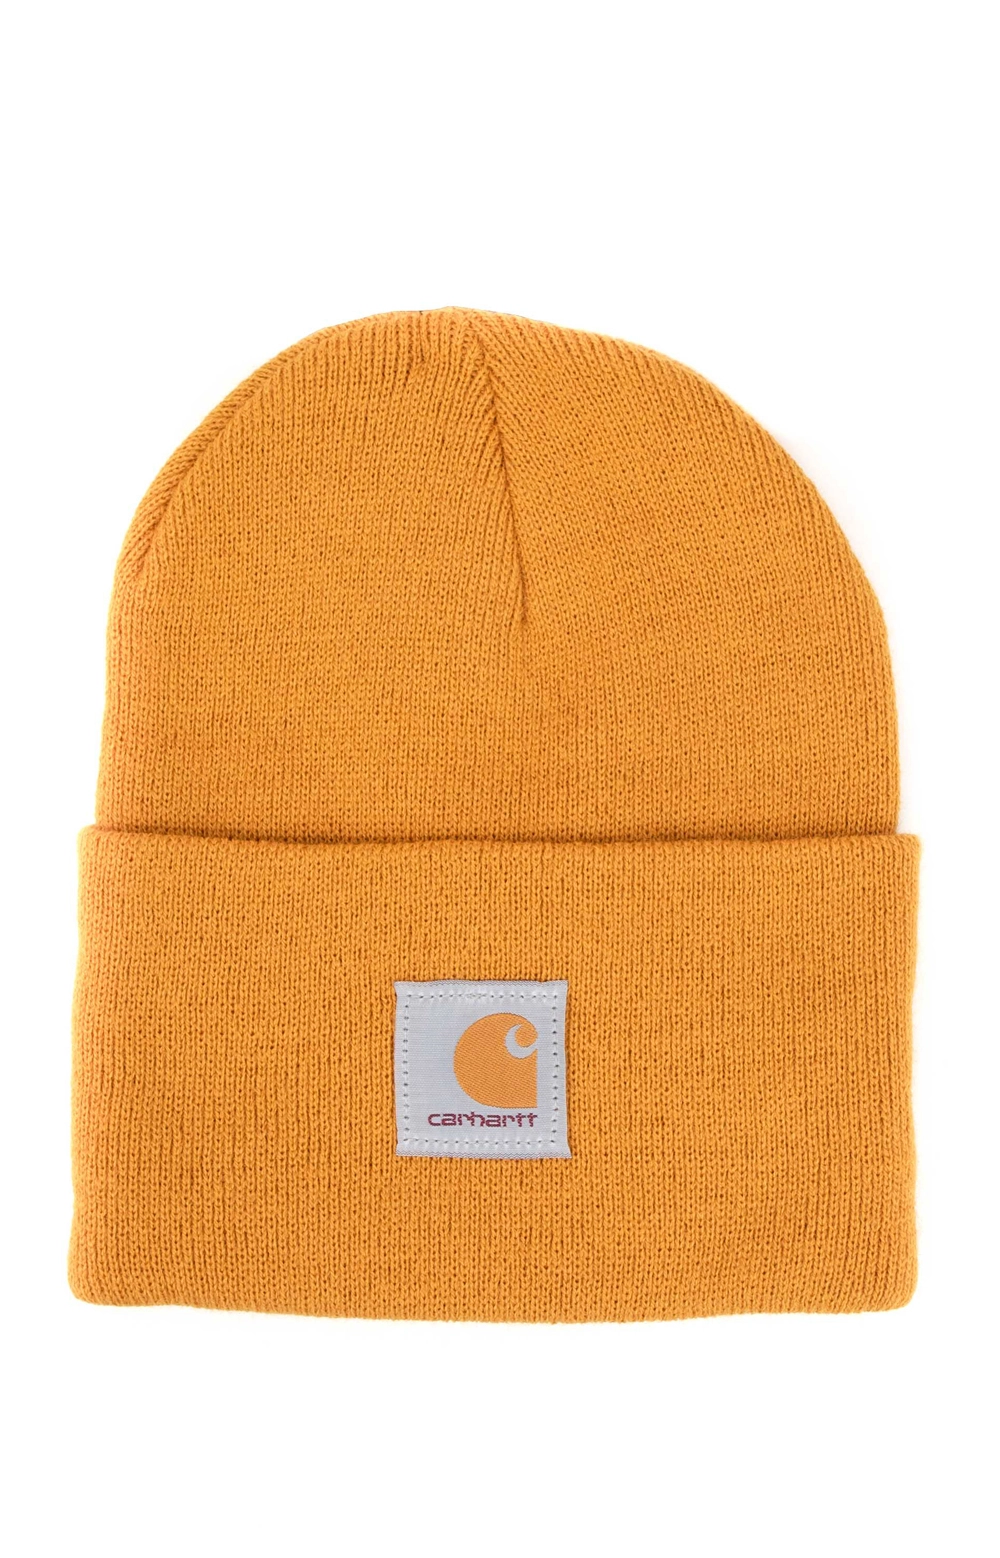 Carhartt Acrylic Watch Hat - Carhartt Gold